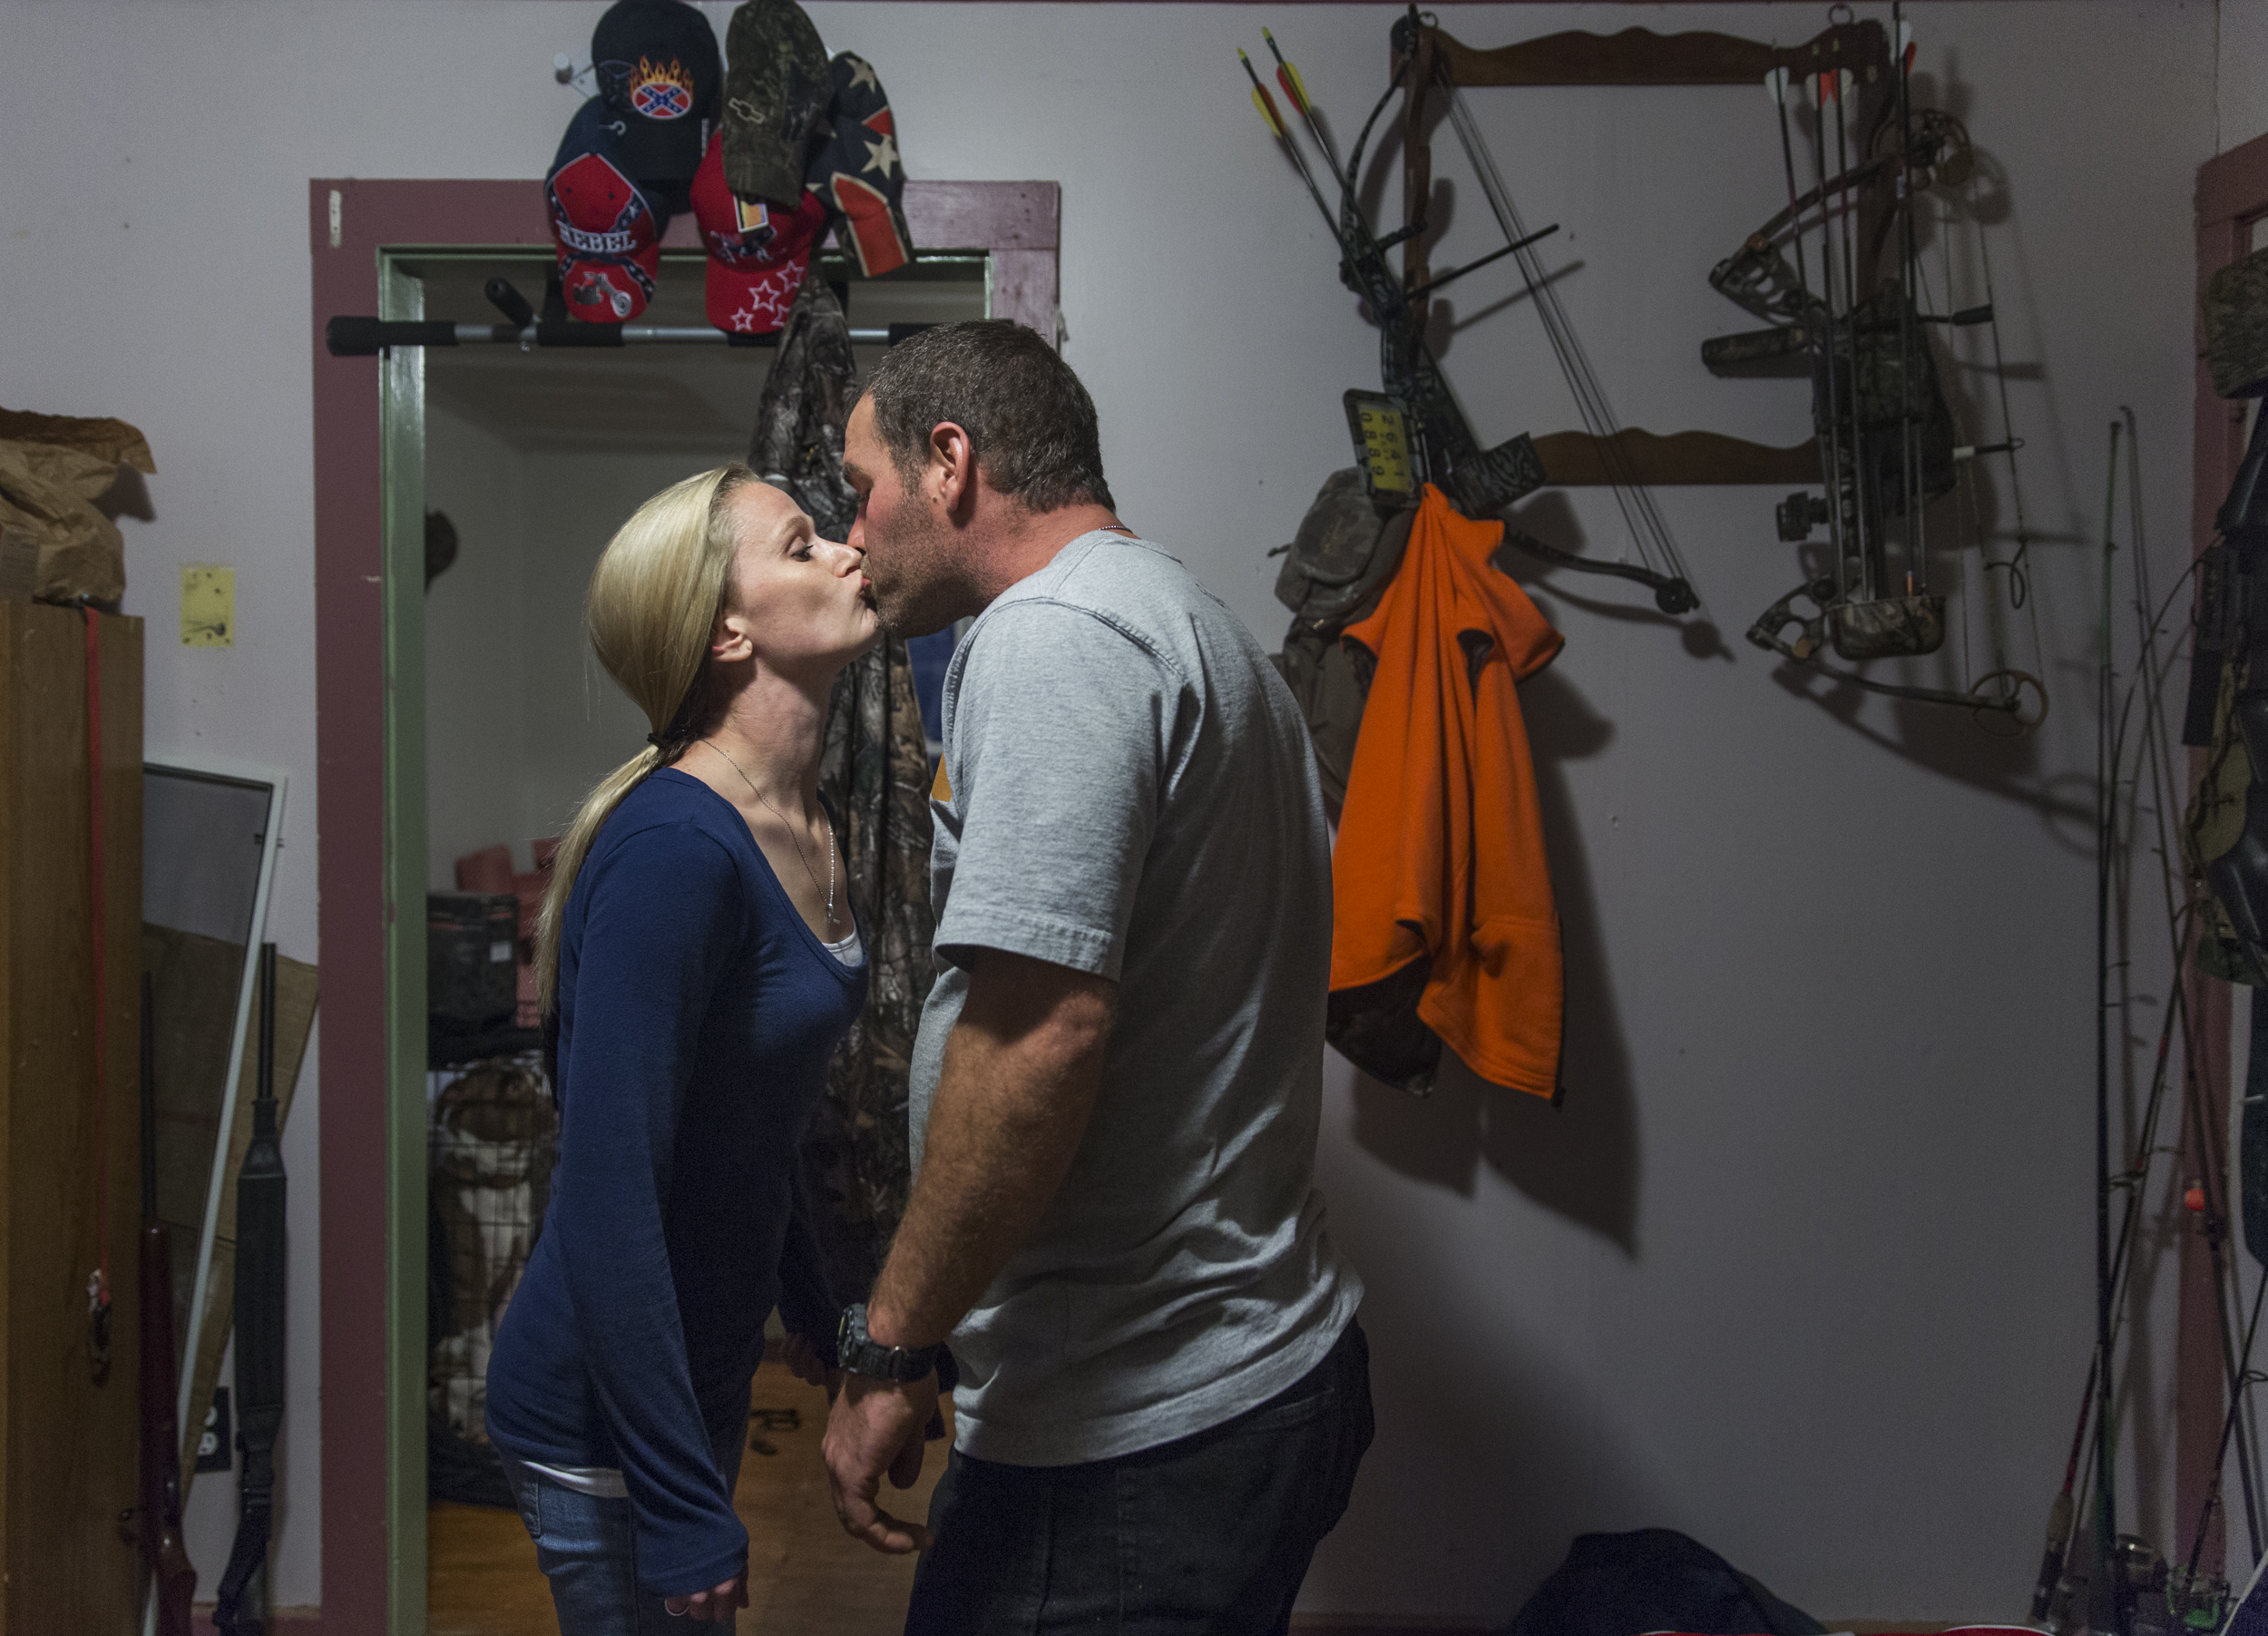 Bridgette and Luke kiss in their smoking room before returning to their kids' birthday party. Luke stores all of his hunting, fishing, and trapping equipment in the room that he and Bridgette smoke cigarettes in. Nov. 23, 2014.